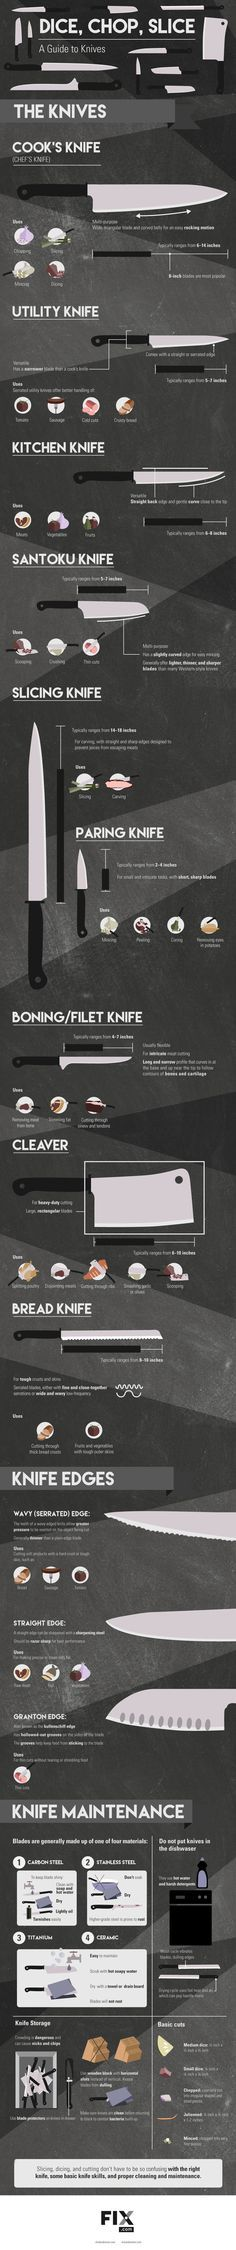 The Complete Kitchen Knife Guide [Infographic] | Kitchenability